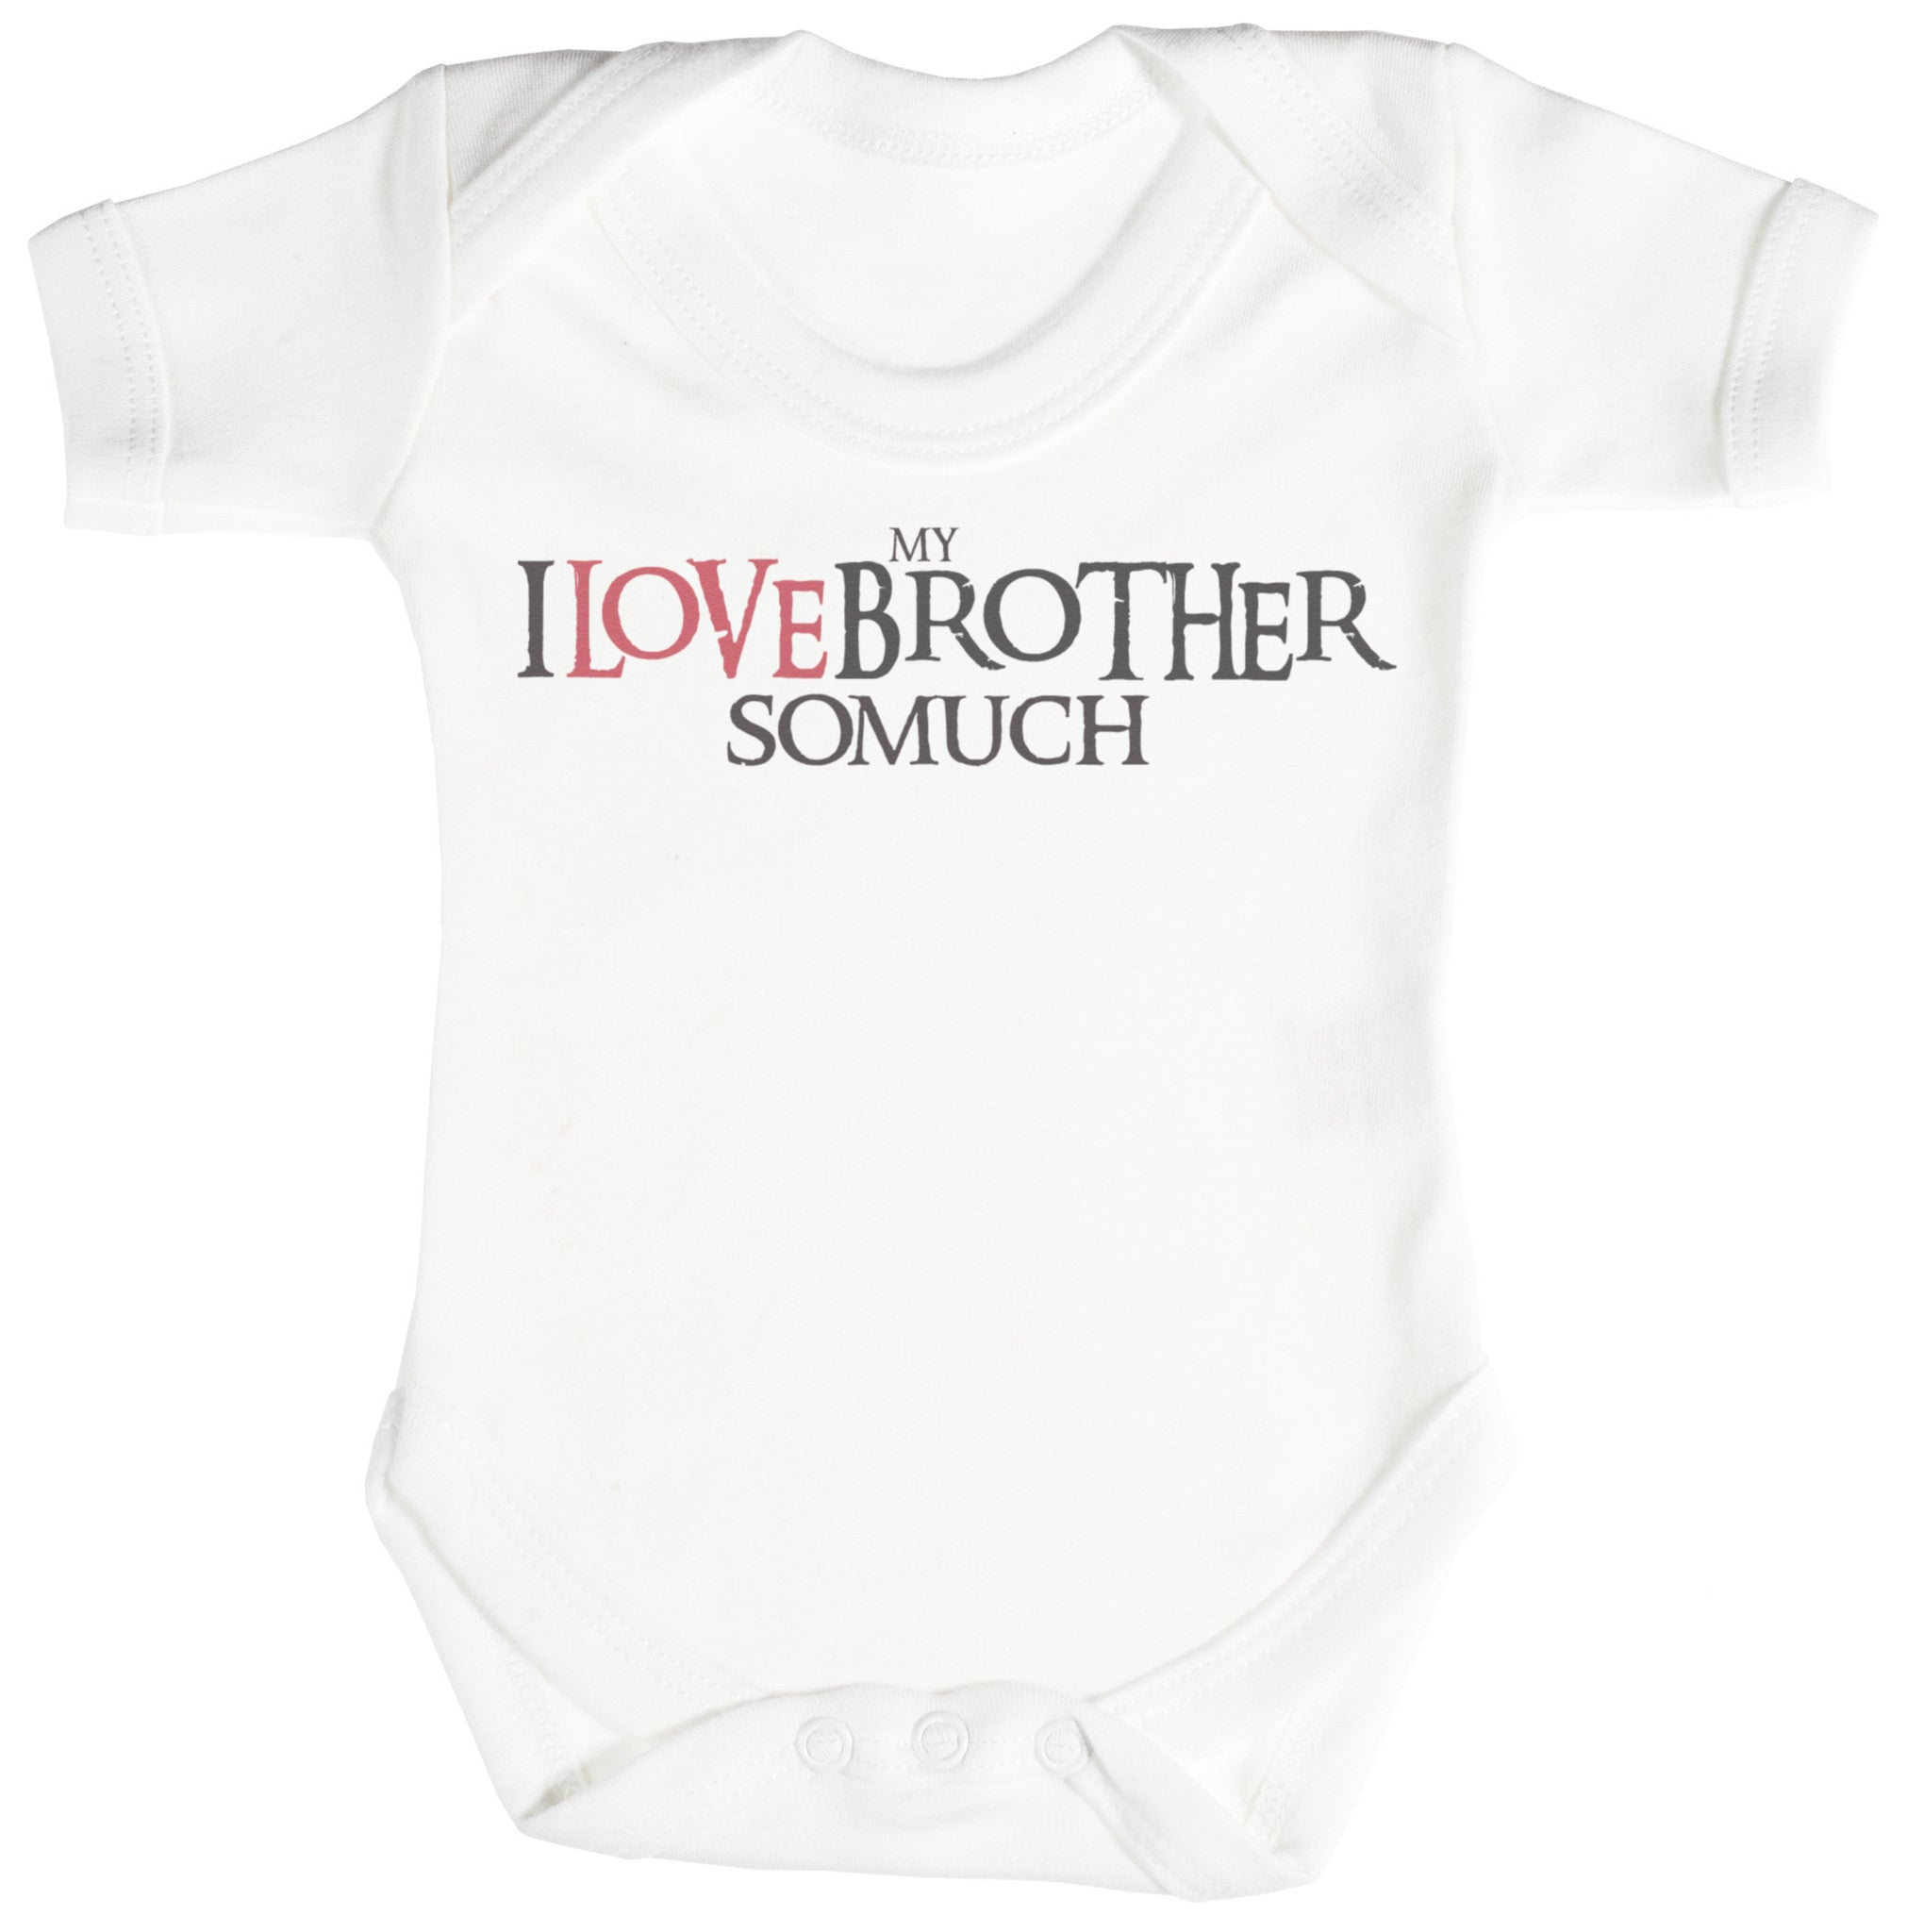 I Love My Brother So Much Baby Bodysuit / Babygrow